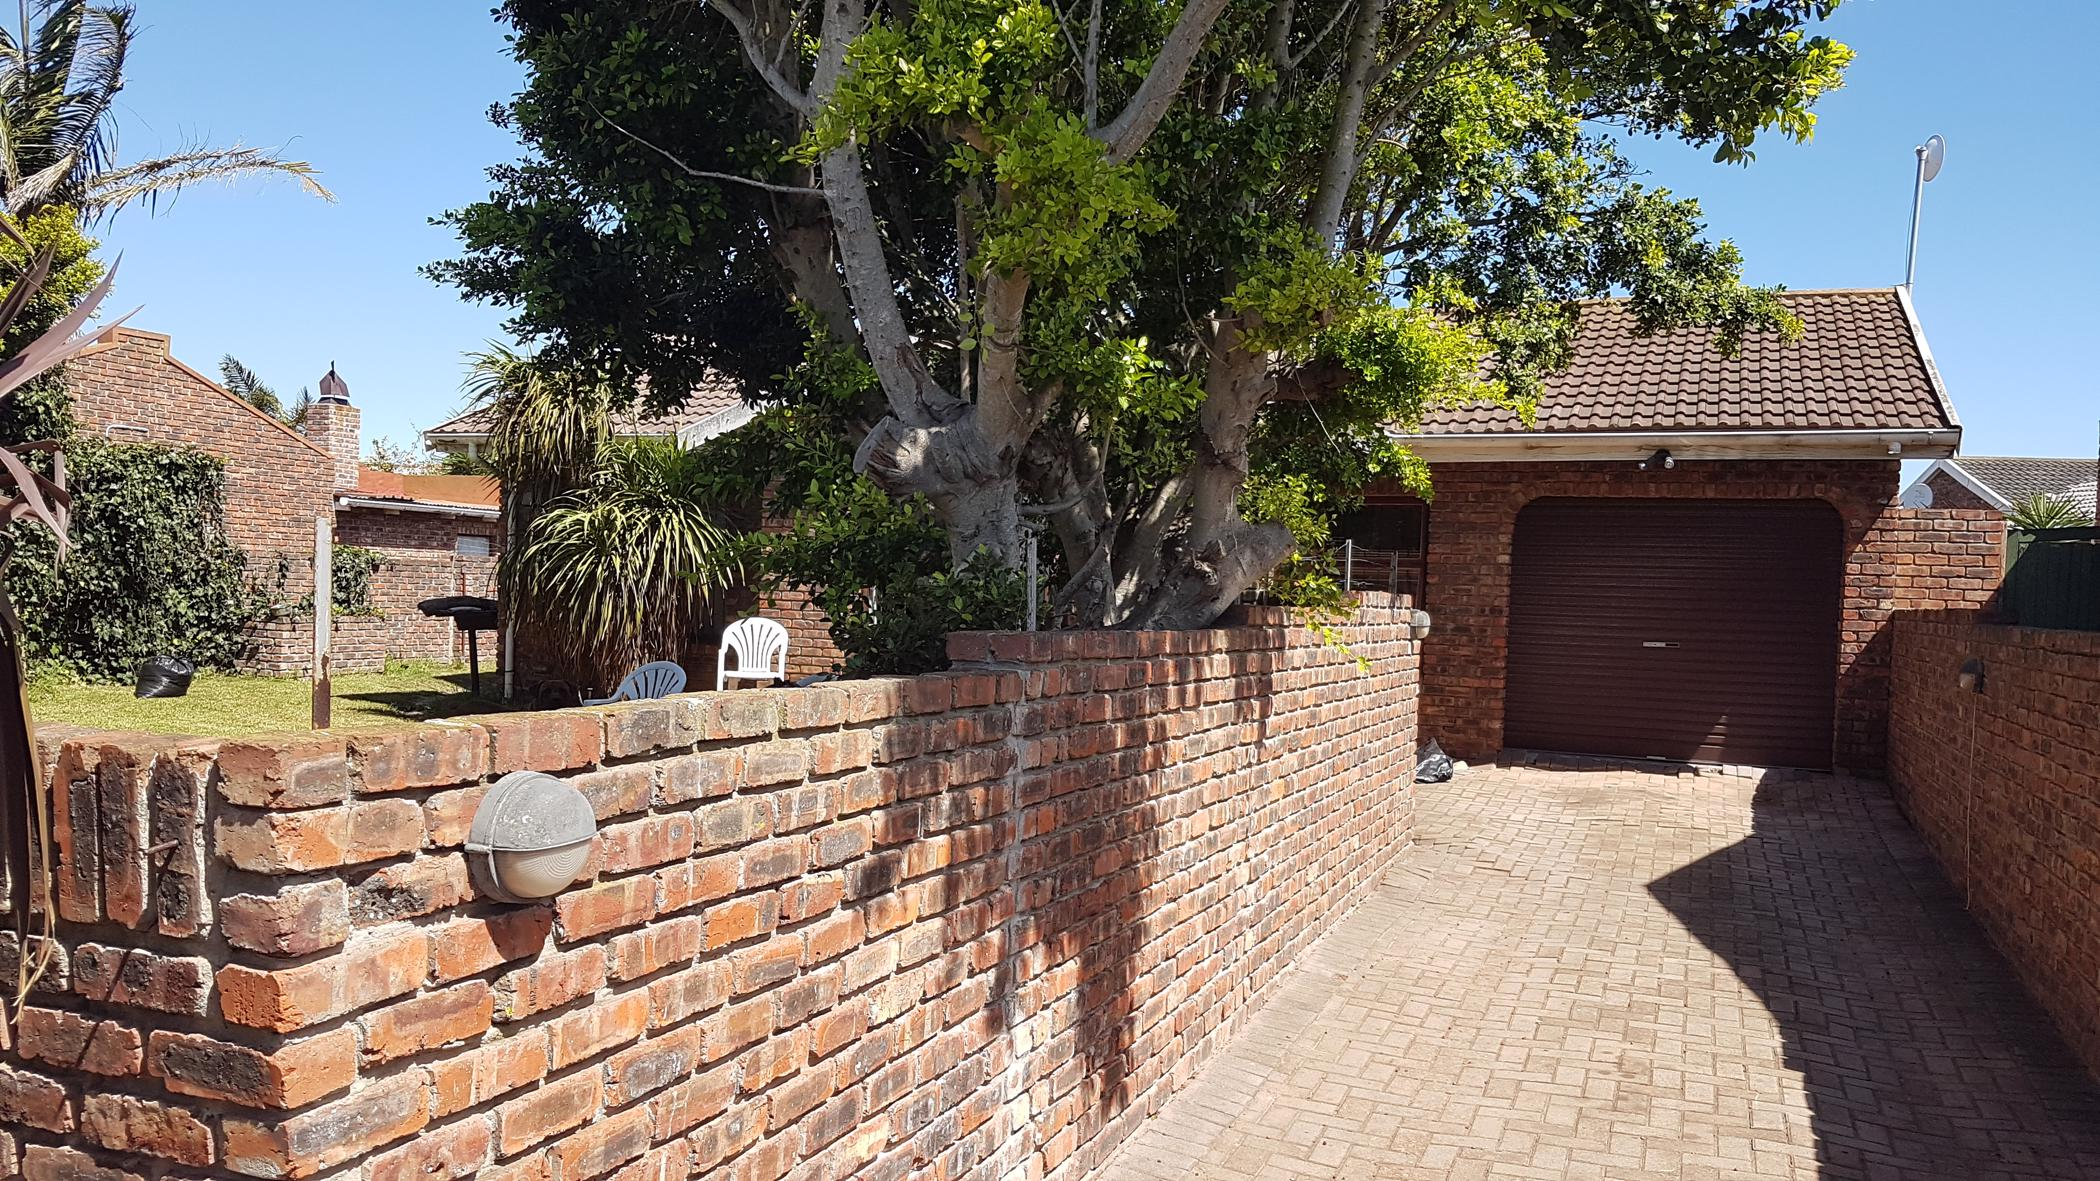 https://listing.pamgolding.co.za/images/properties/201903/1279815/H/1279815_H_1.jpg